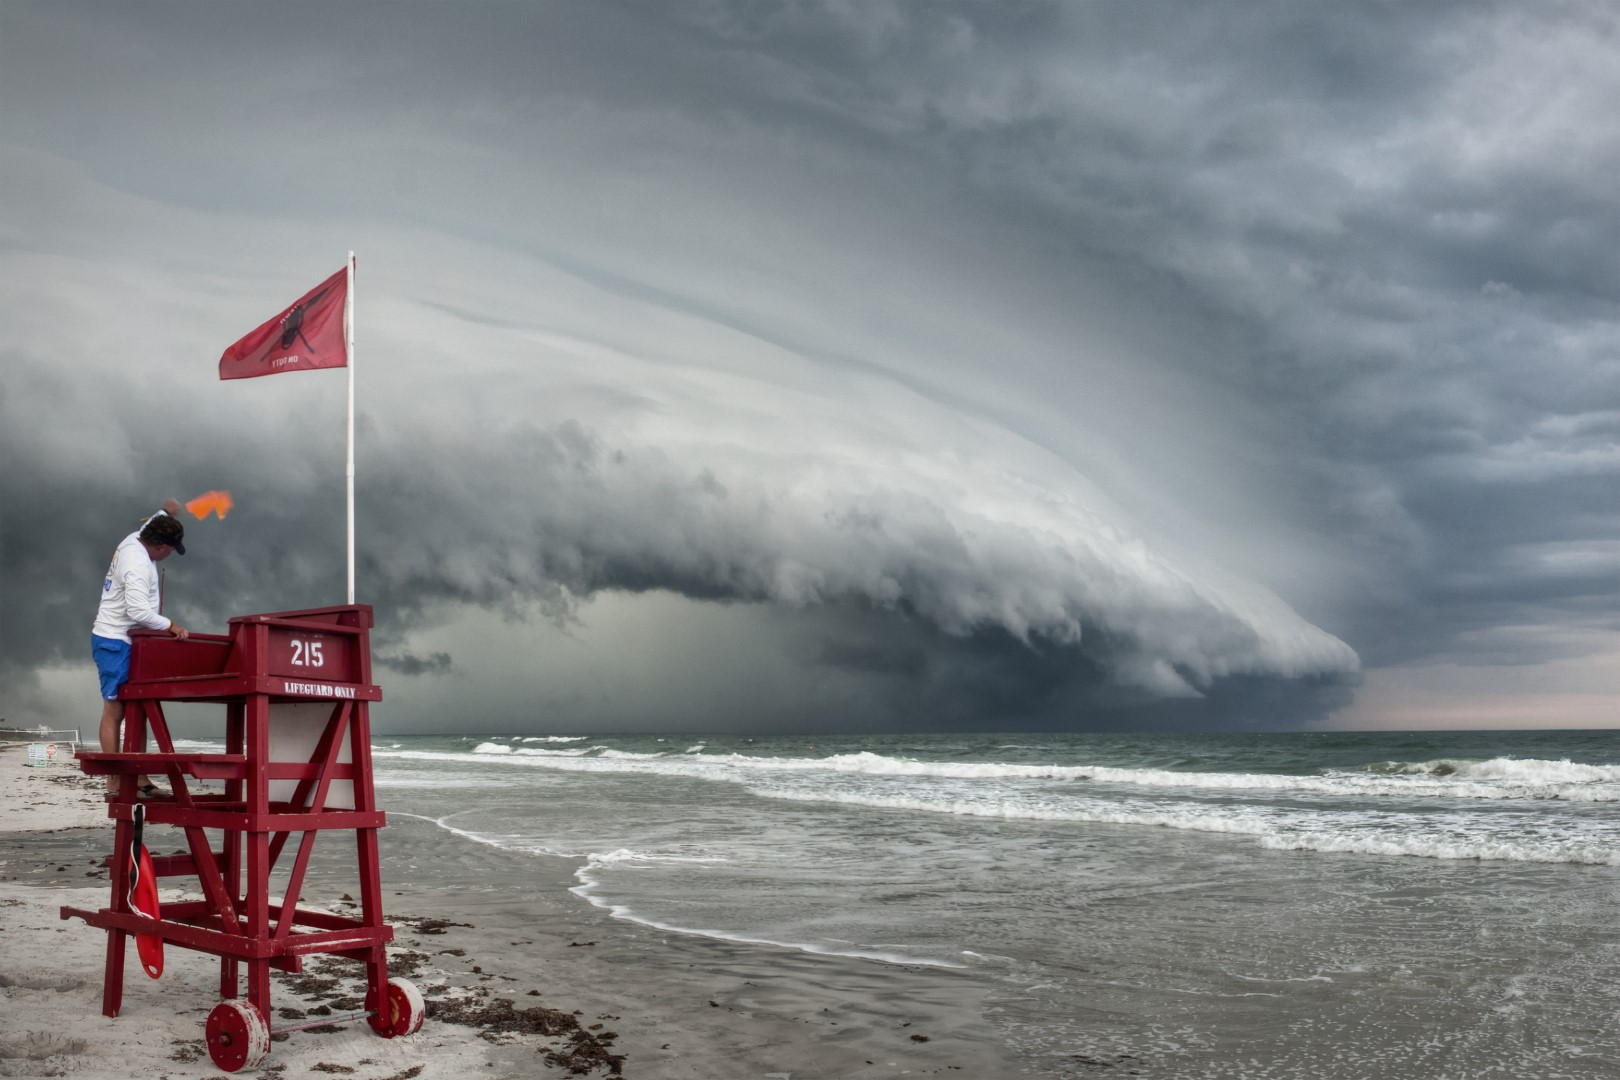 storm_approach_Ormond_Shelf-Large-1.jpeg